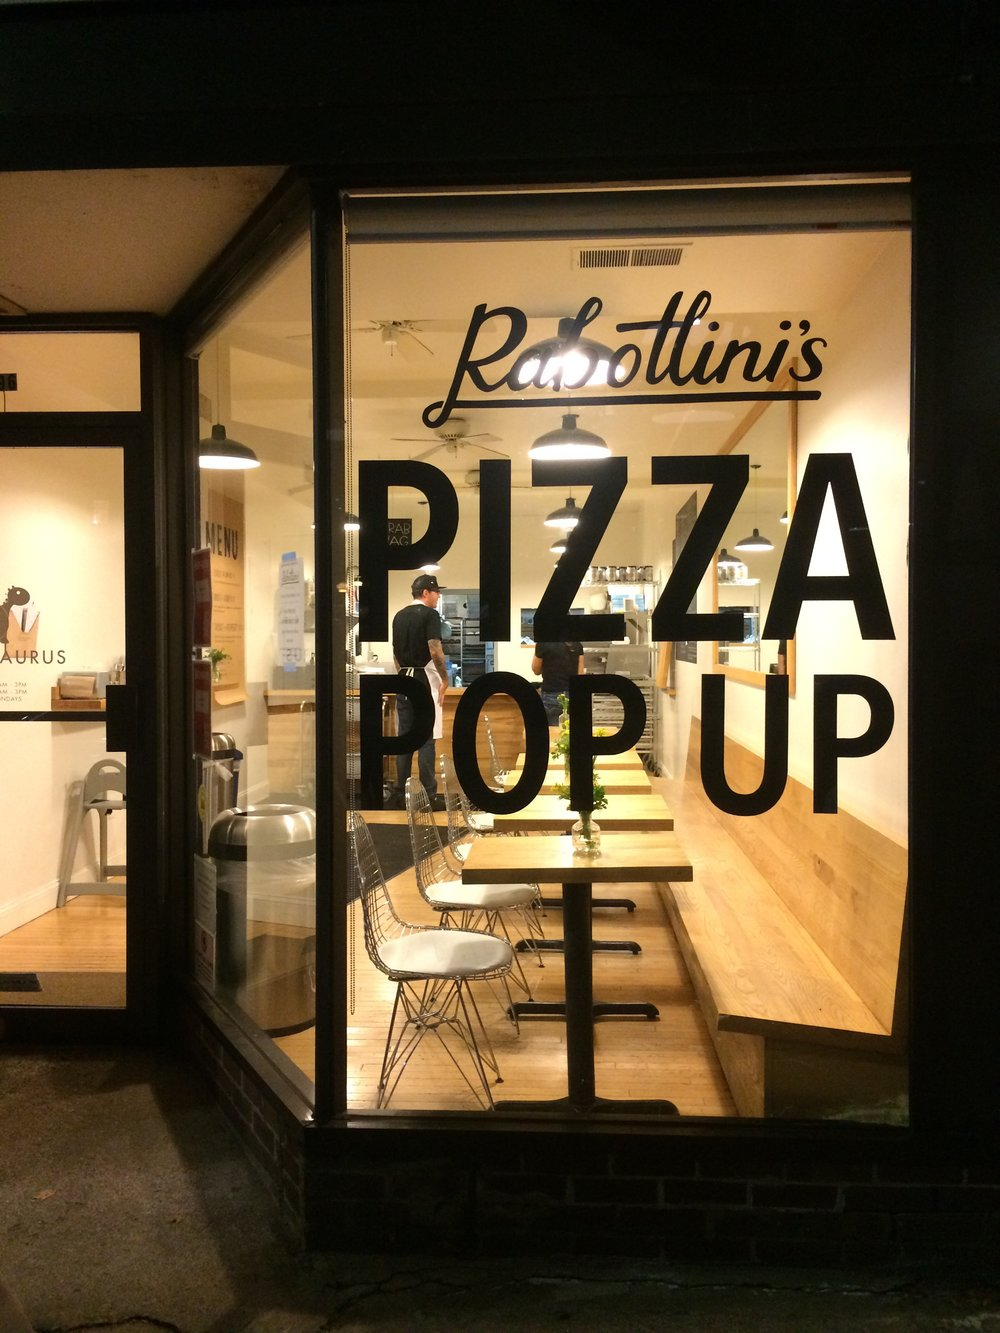 Window Decal for Rabottini's Pizza Pop Up